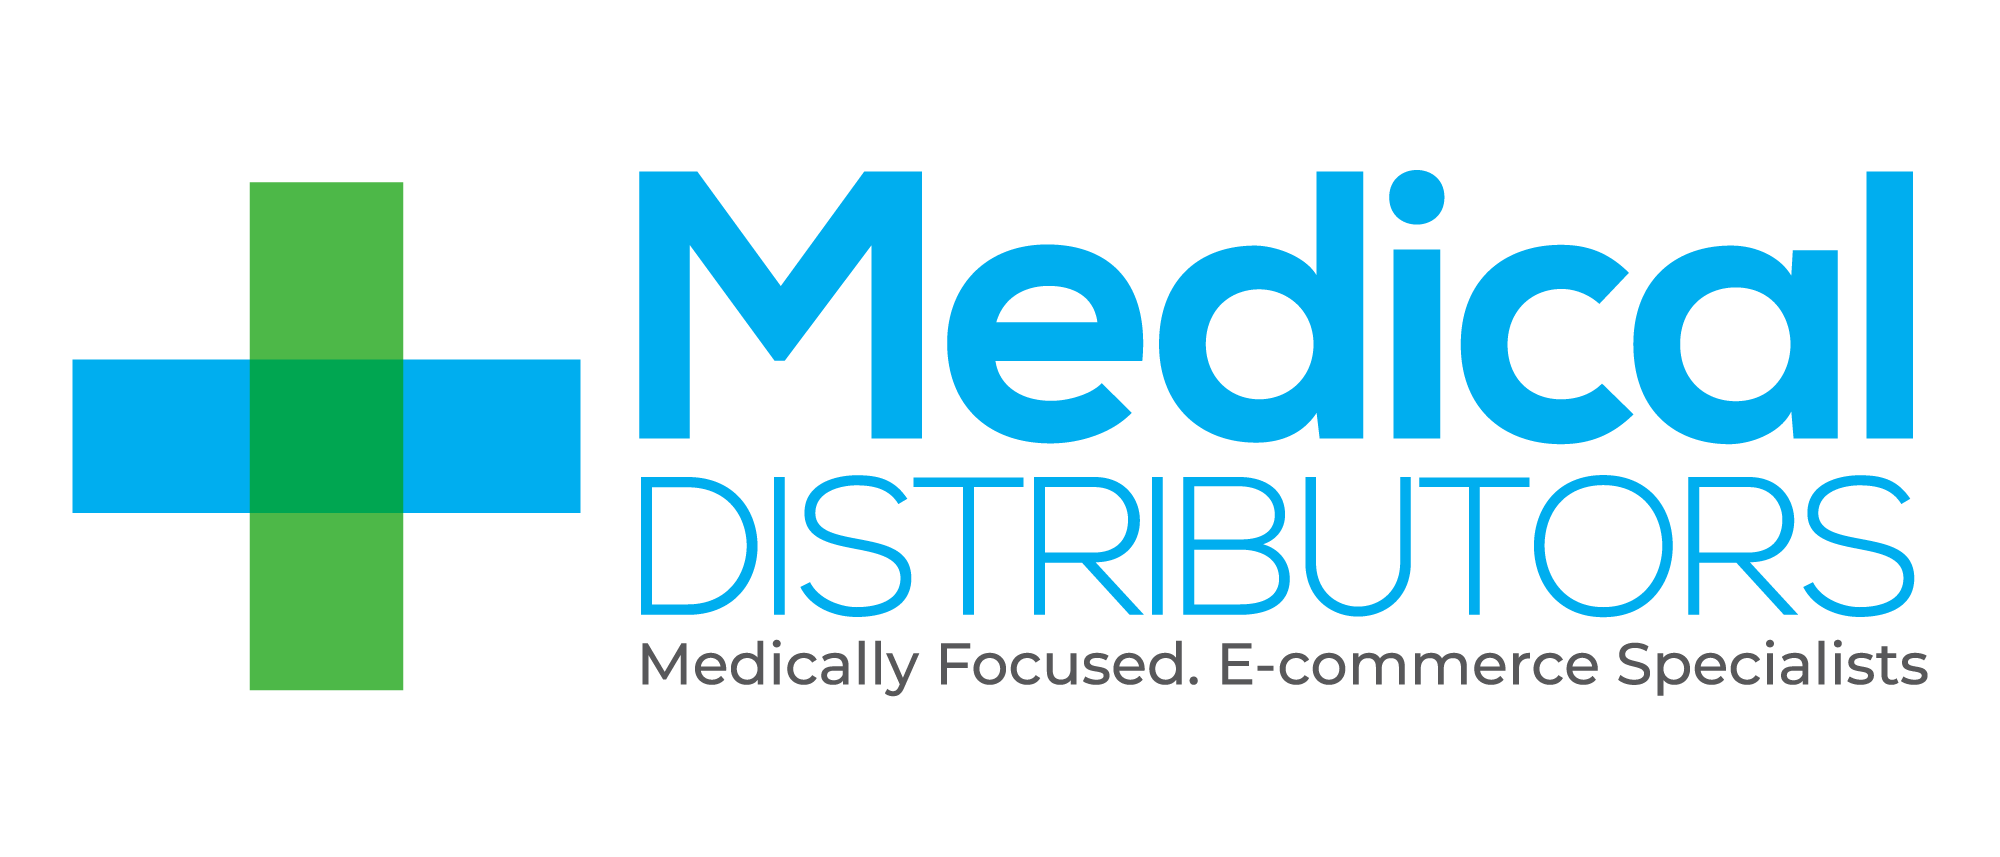 Medical distributors South Africa